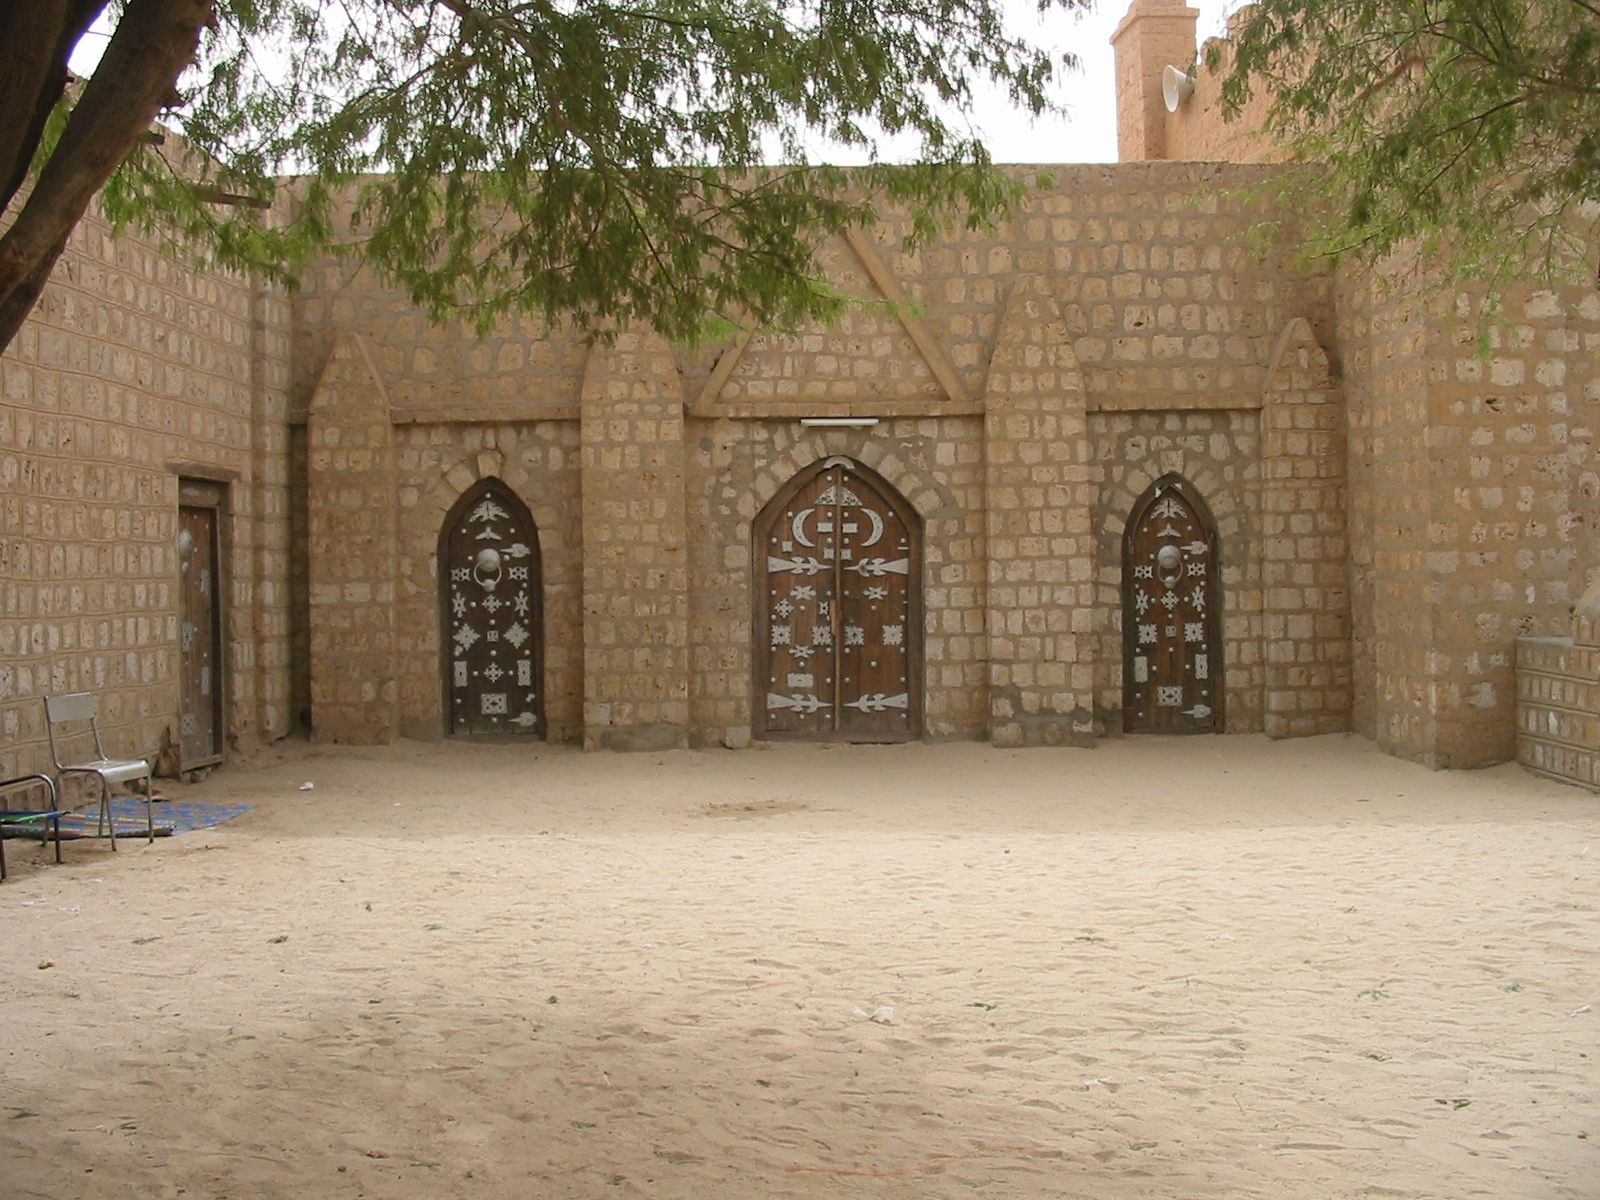 The University Of Timbuktu Was Founded In The 11th Century By The